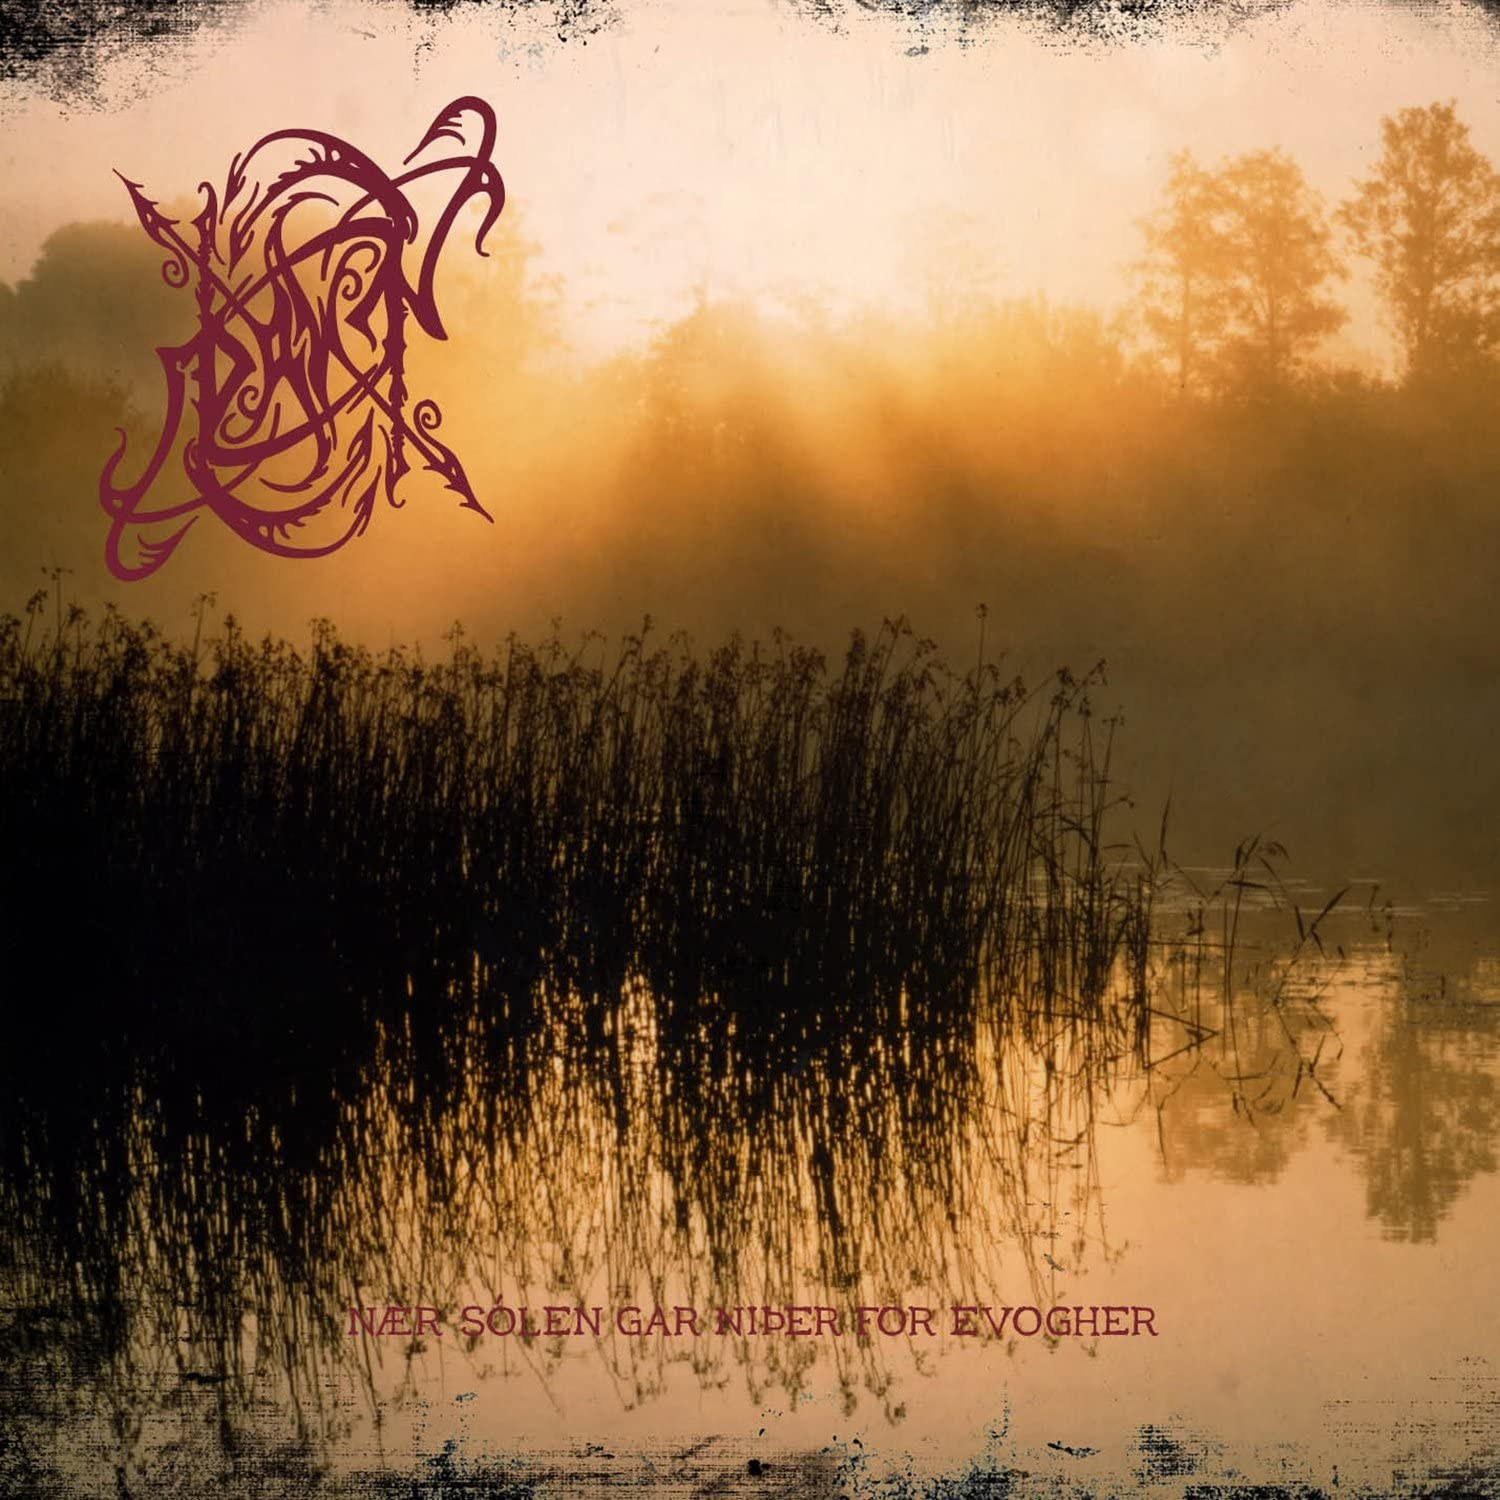 Review for Dawn - Nær Sólen Gar Niþer for Evogher